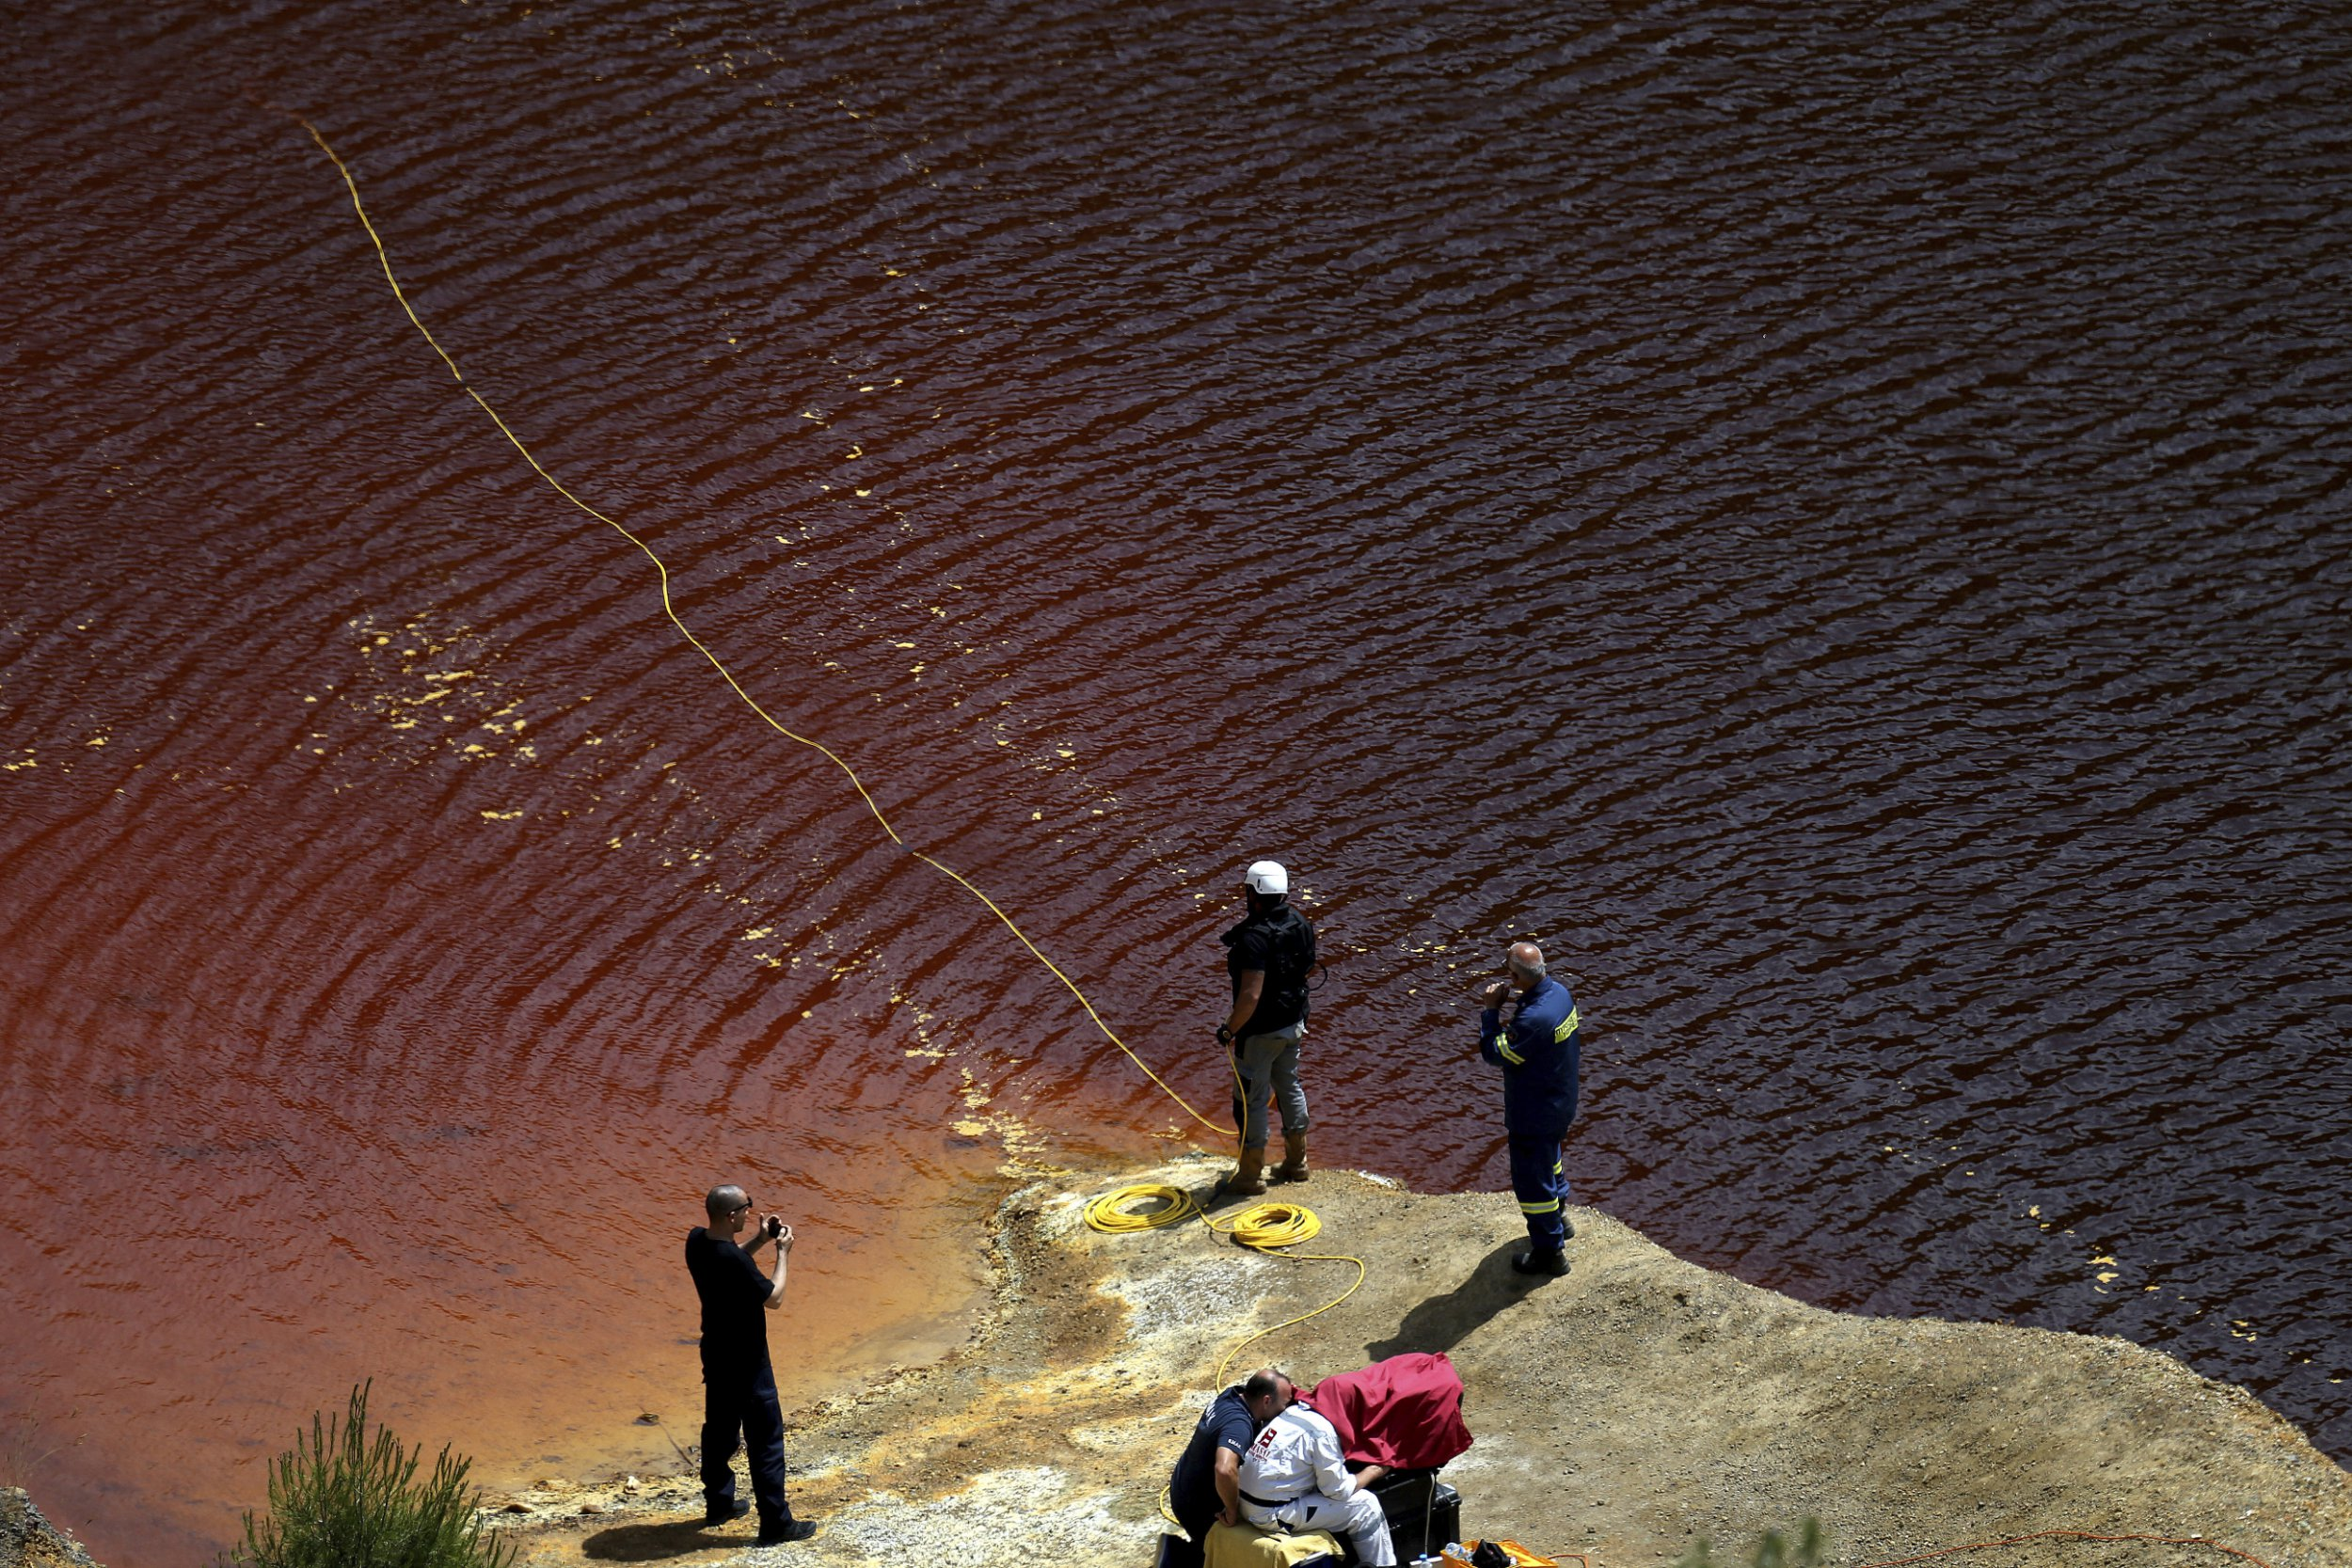 Investigators are searching for bodies with a special camera in a man-made lake near the village of Mitsero outside of the capital Nicosia, Cyprus, Saturday, April 27, 2019. Cyprus police are intensifying a search for the remains of more victims at locations where an army officer, who authorities say admitted to killing five women and two girls had dumped their bodies. (AP Photo/Petros Karadjias)